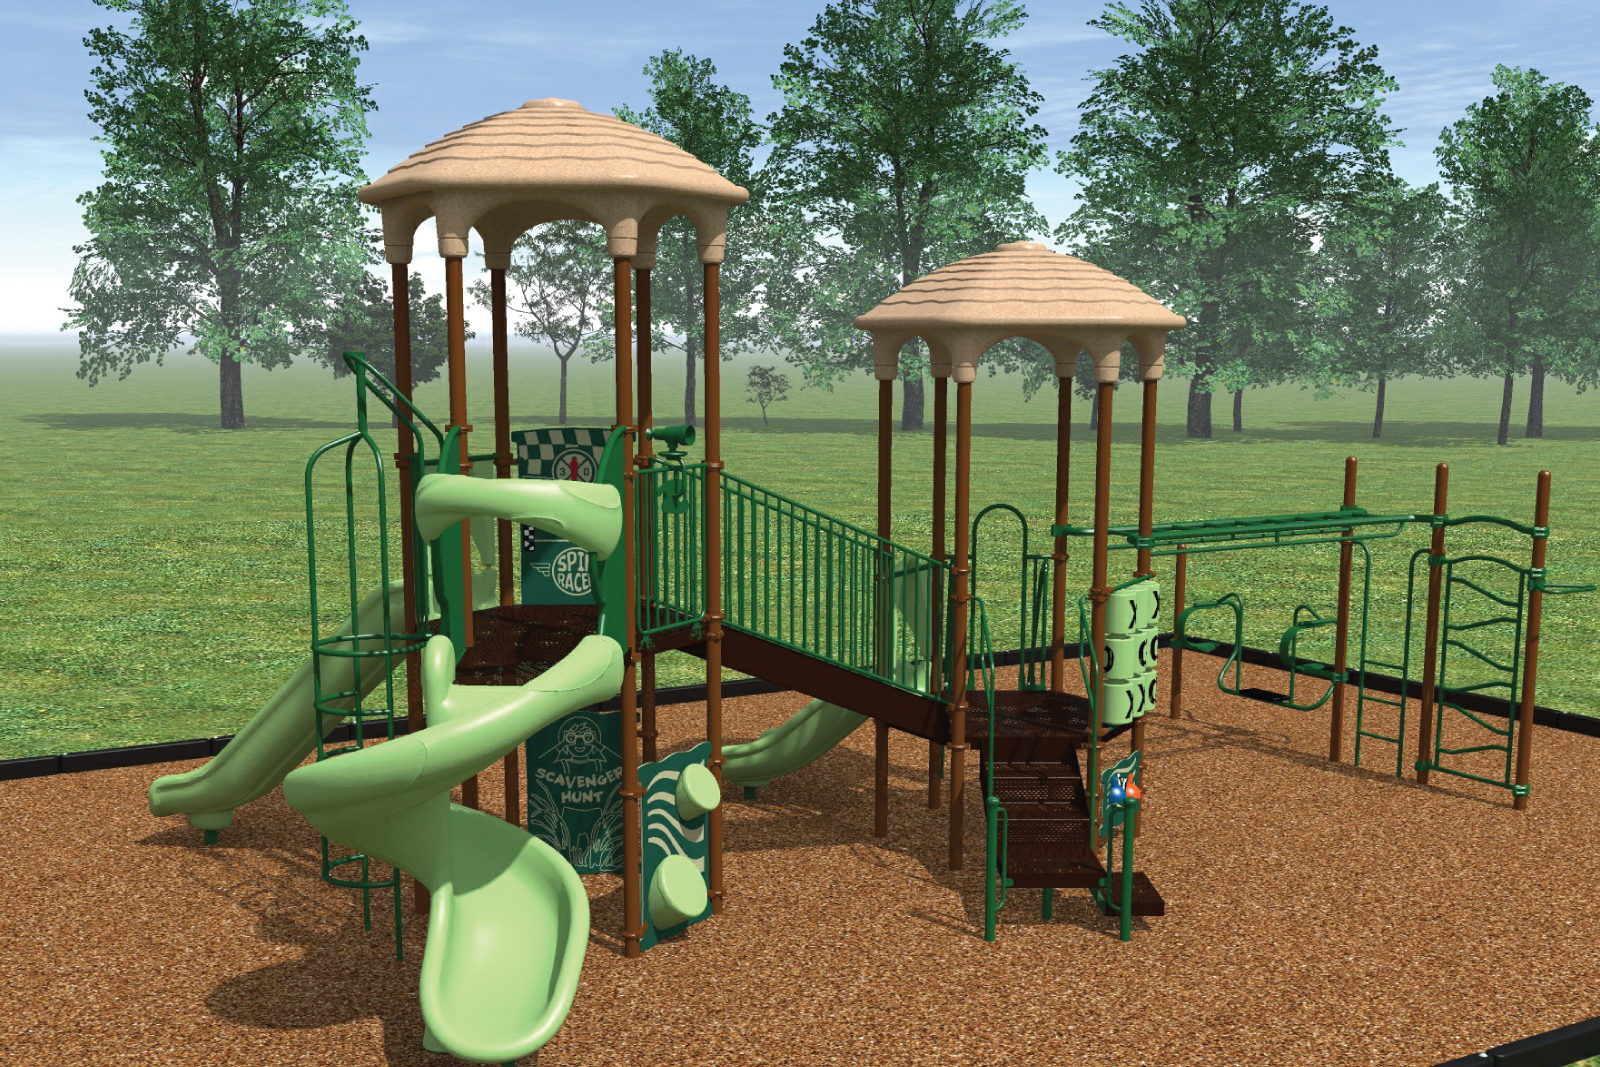 The kids will enjoy their time at a favorite community amenity–the tot lot!